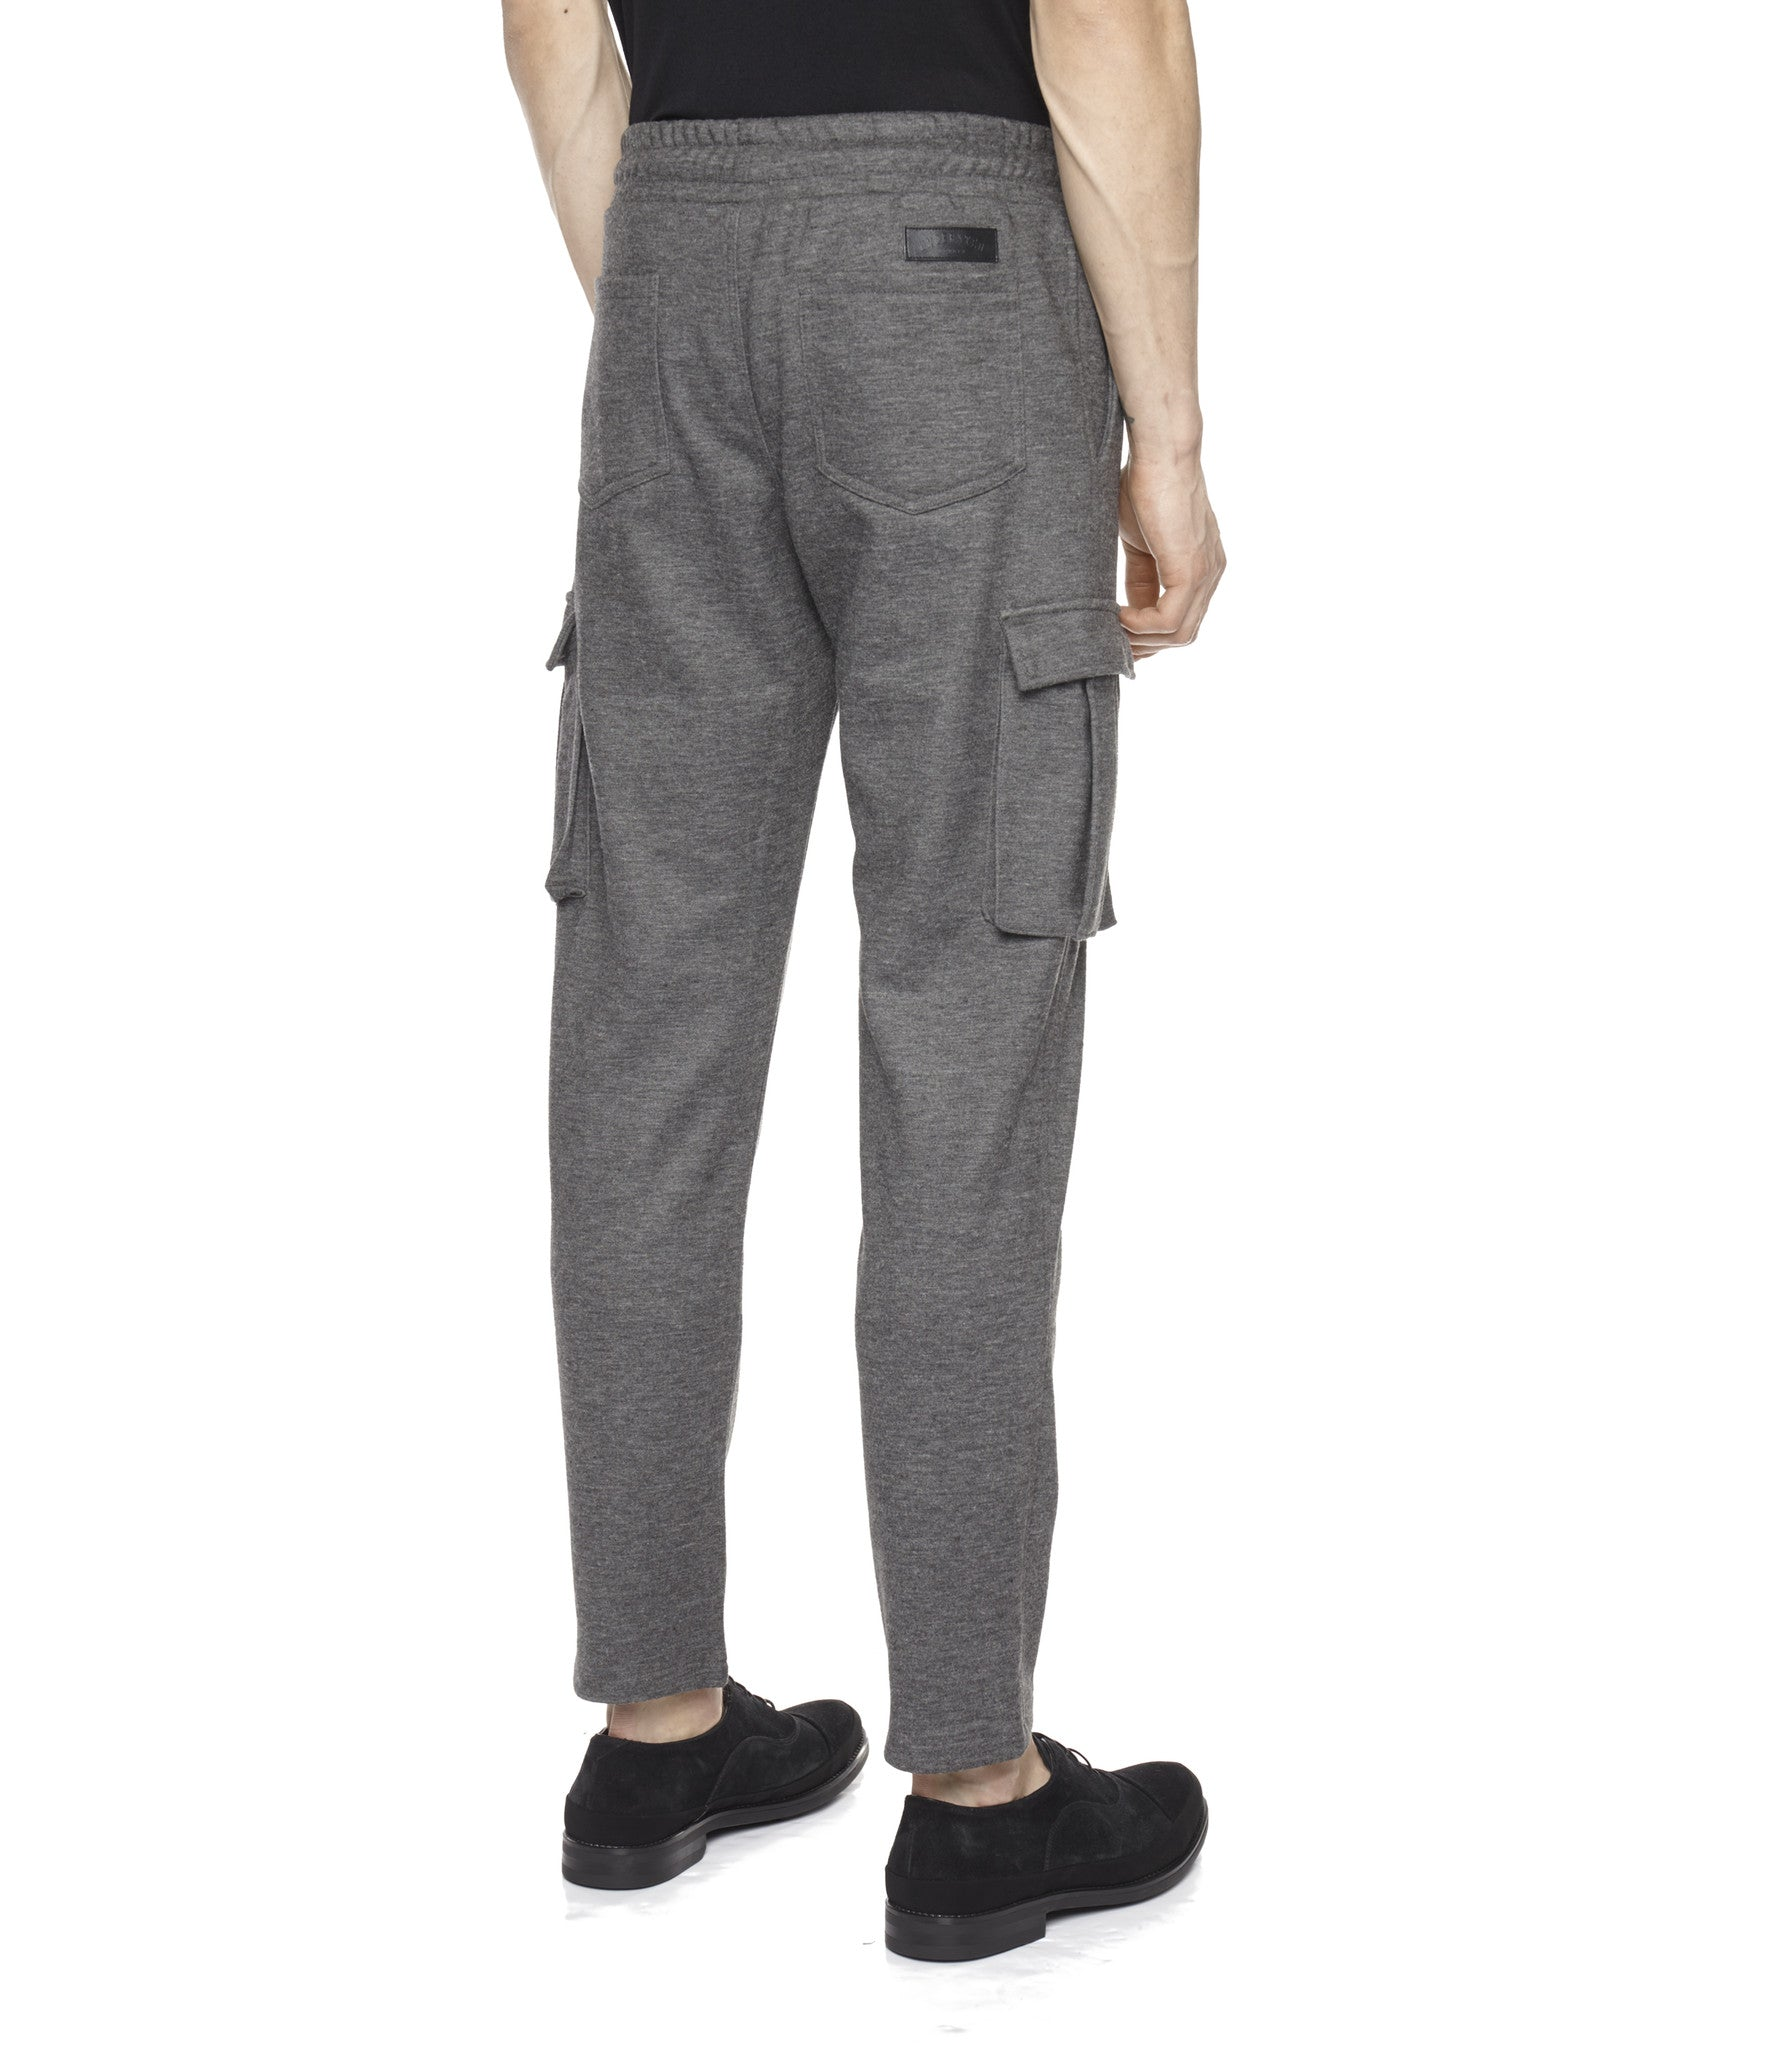 TR253 Wool Blend Cropped Cargo Pants - Charcoal - underated london - underatedco - 5